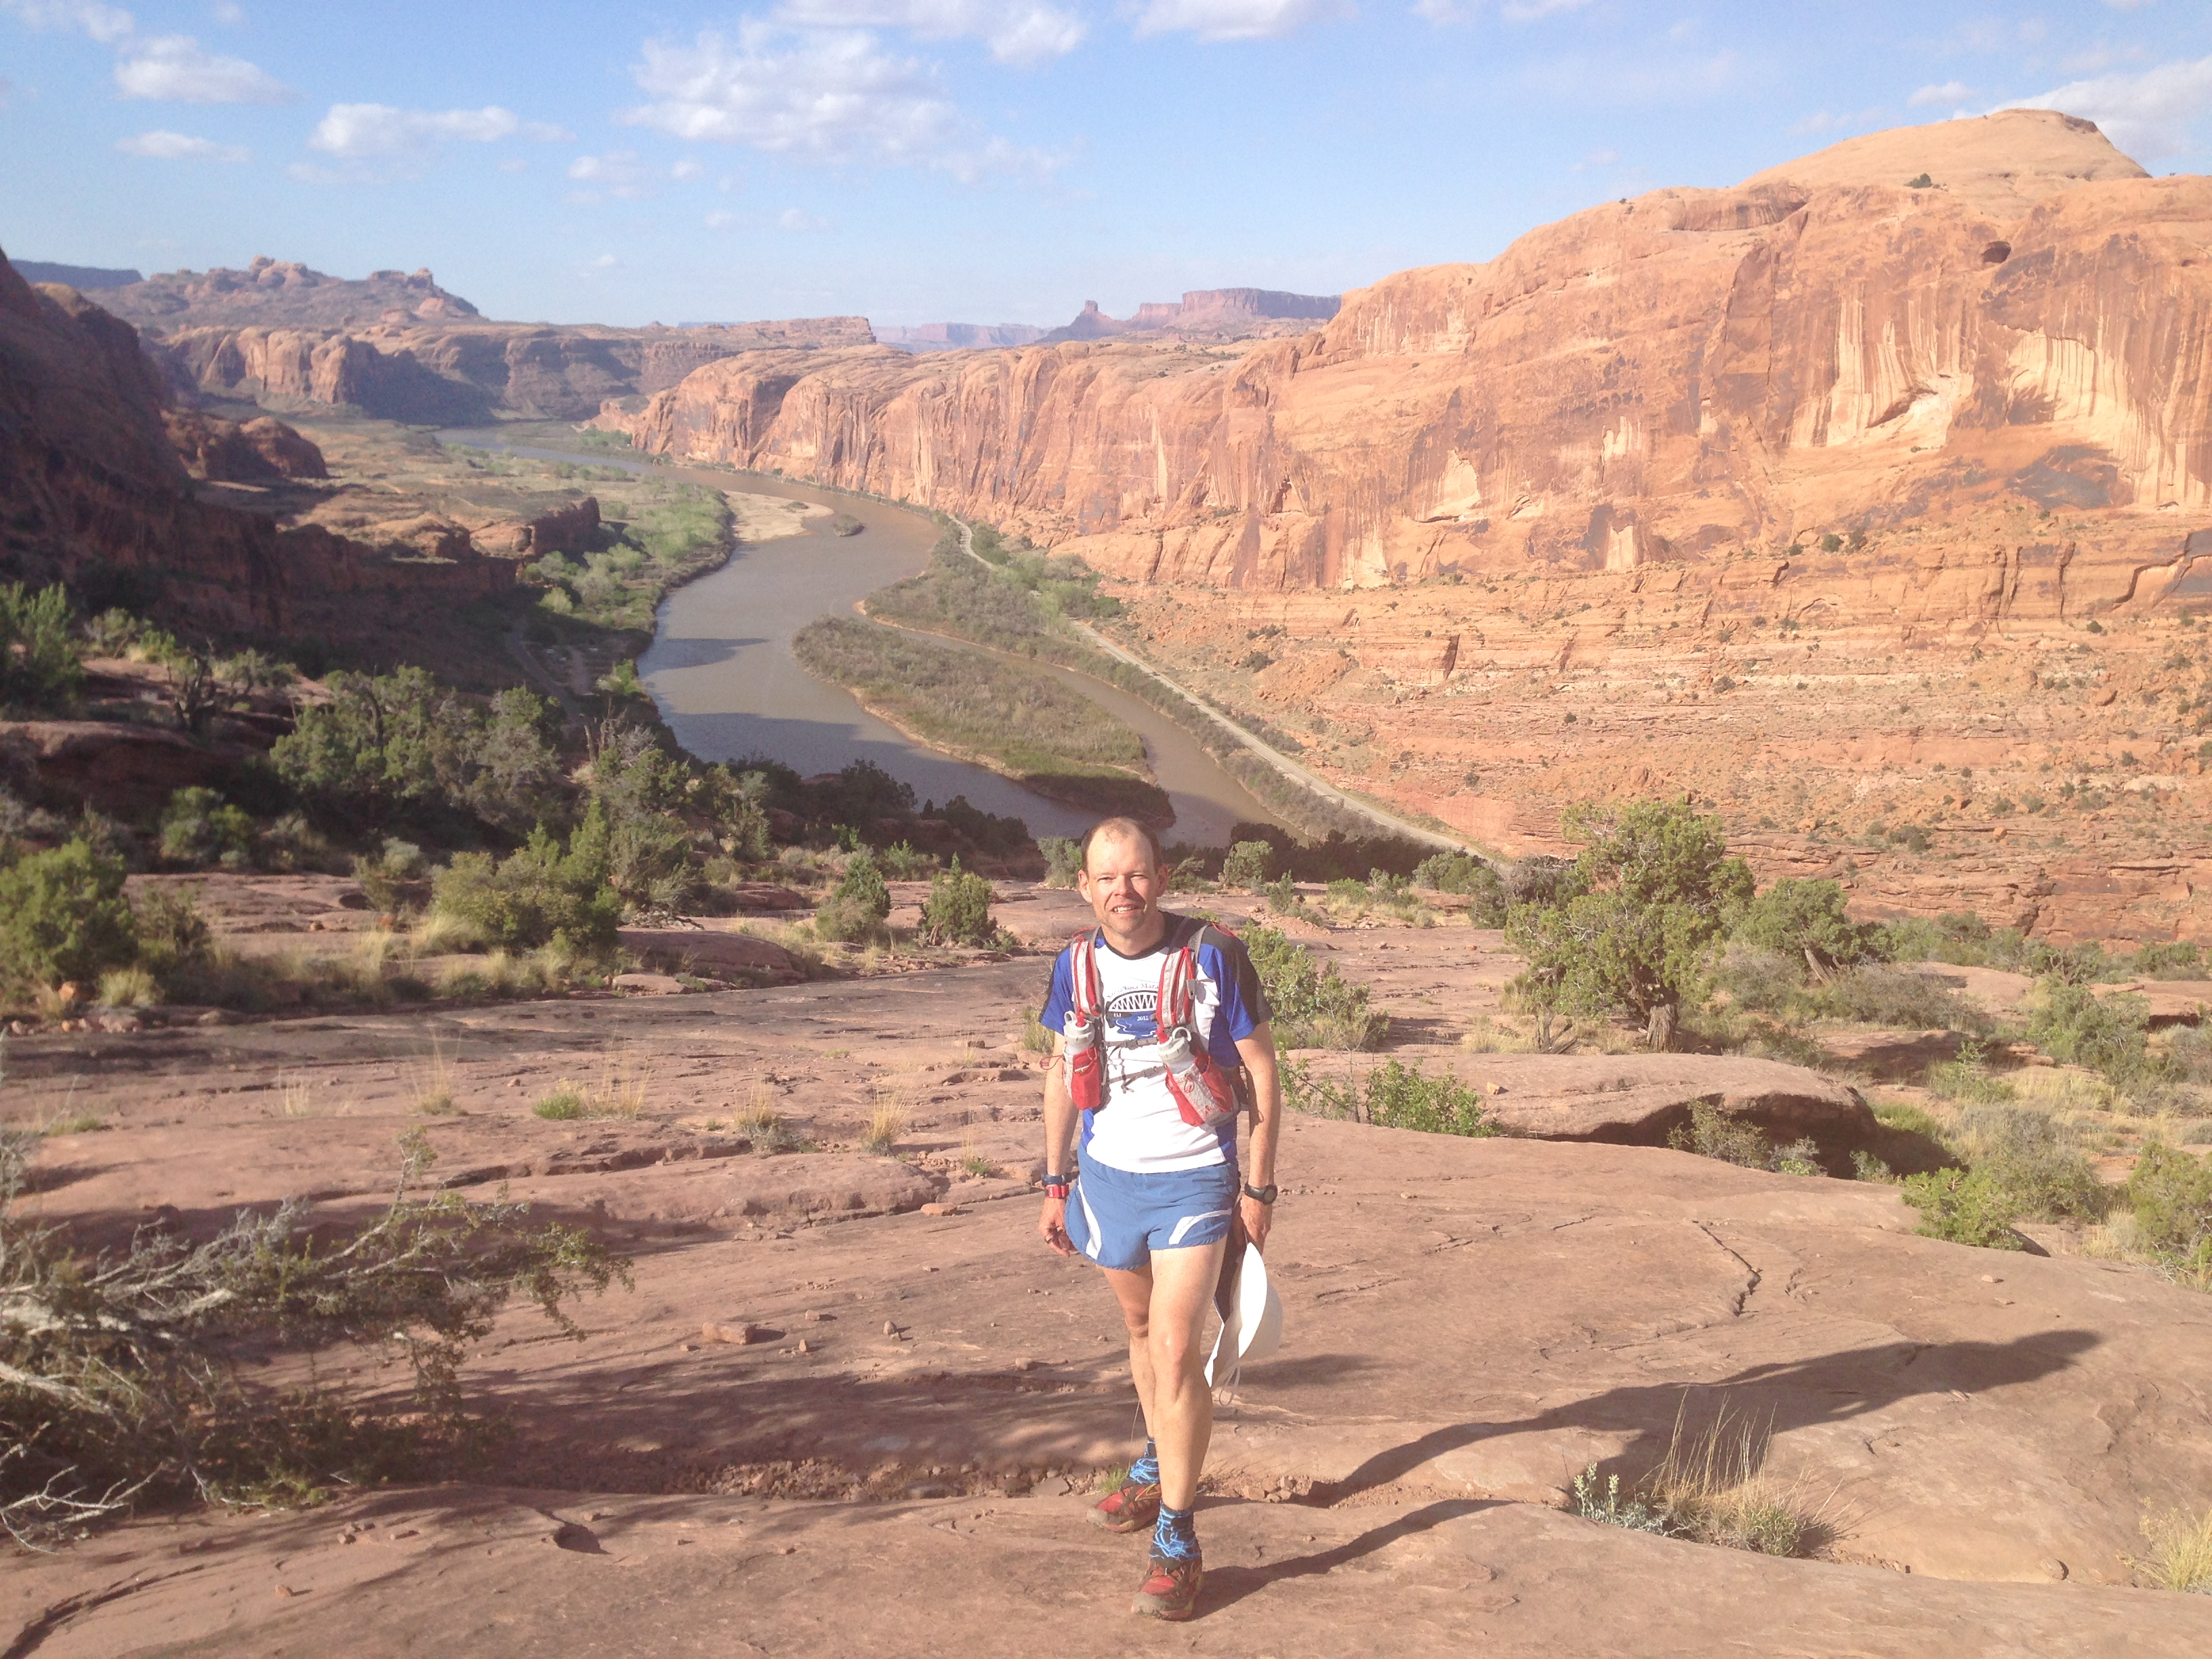 Peter on the Moab Trail